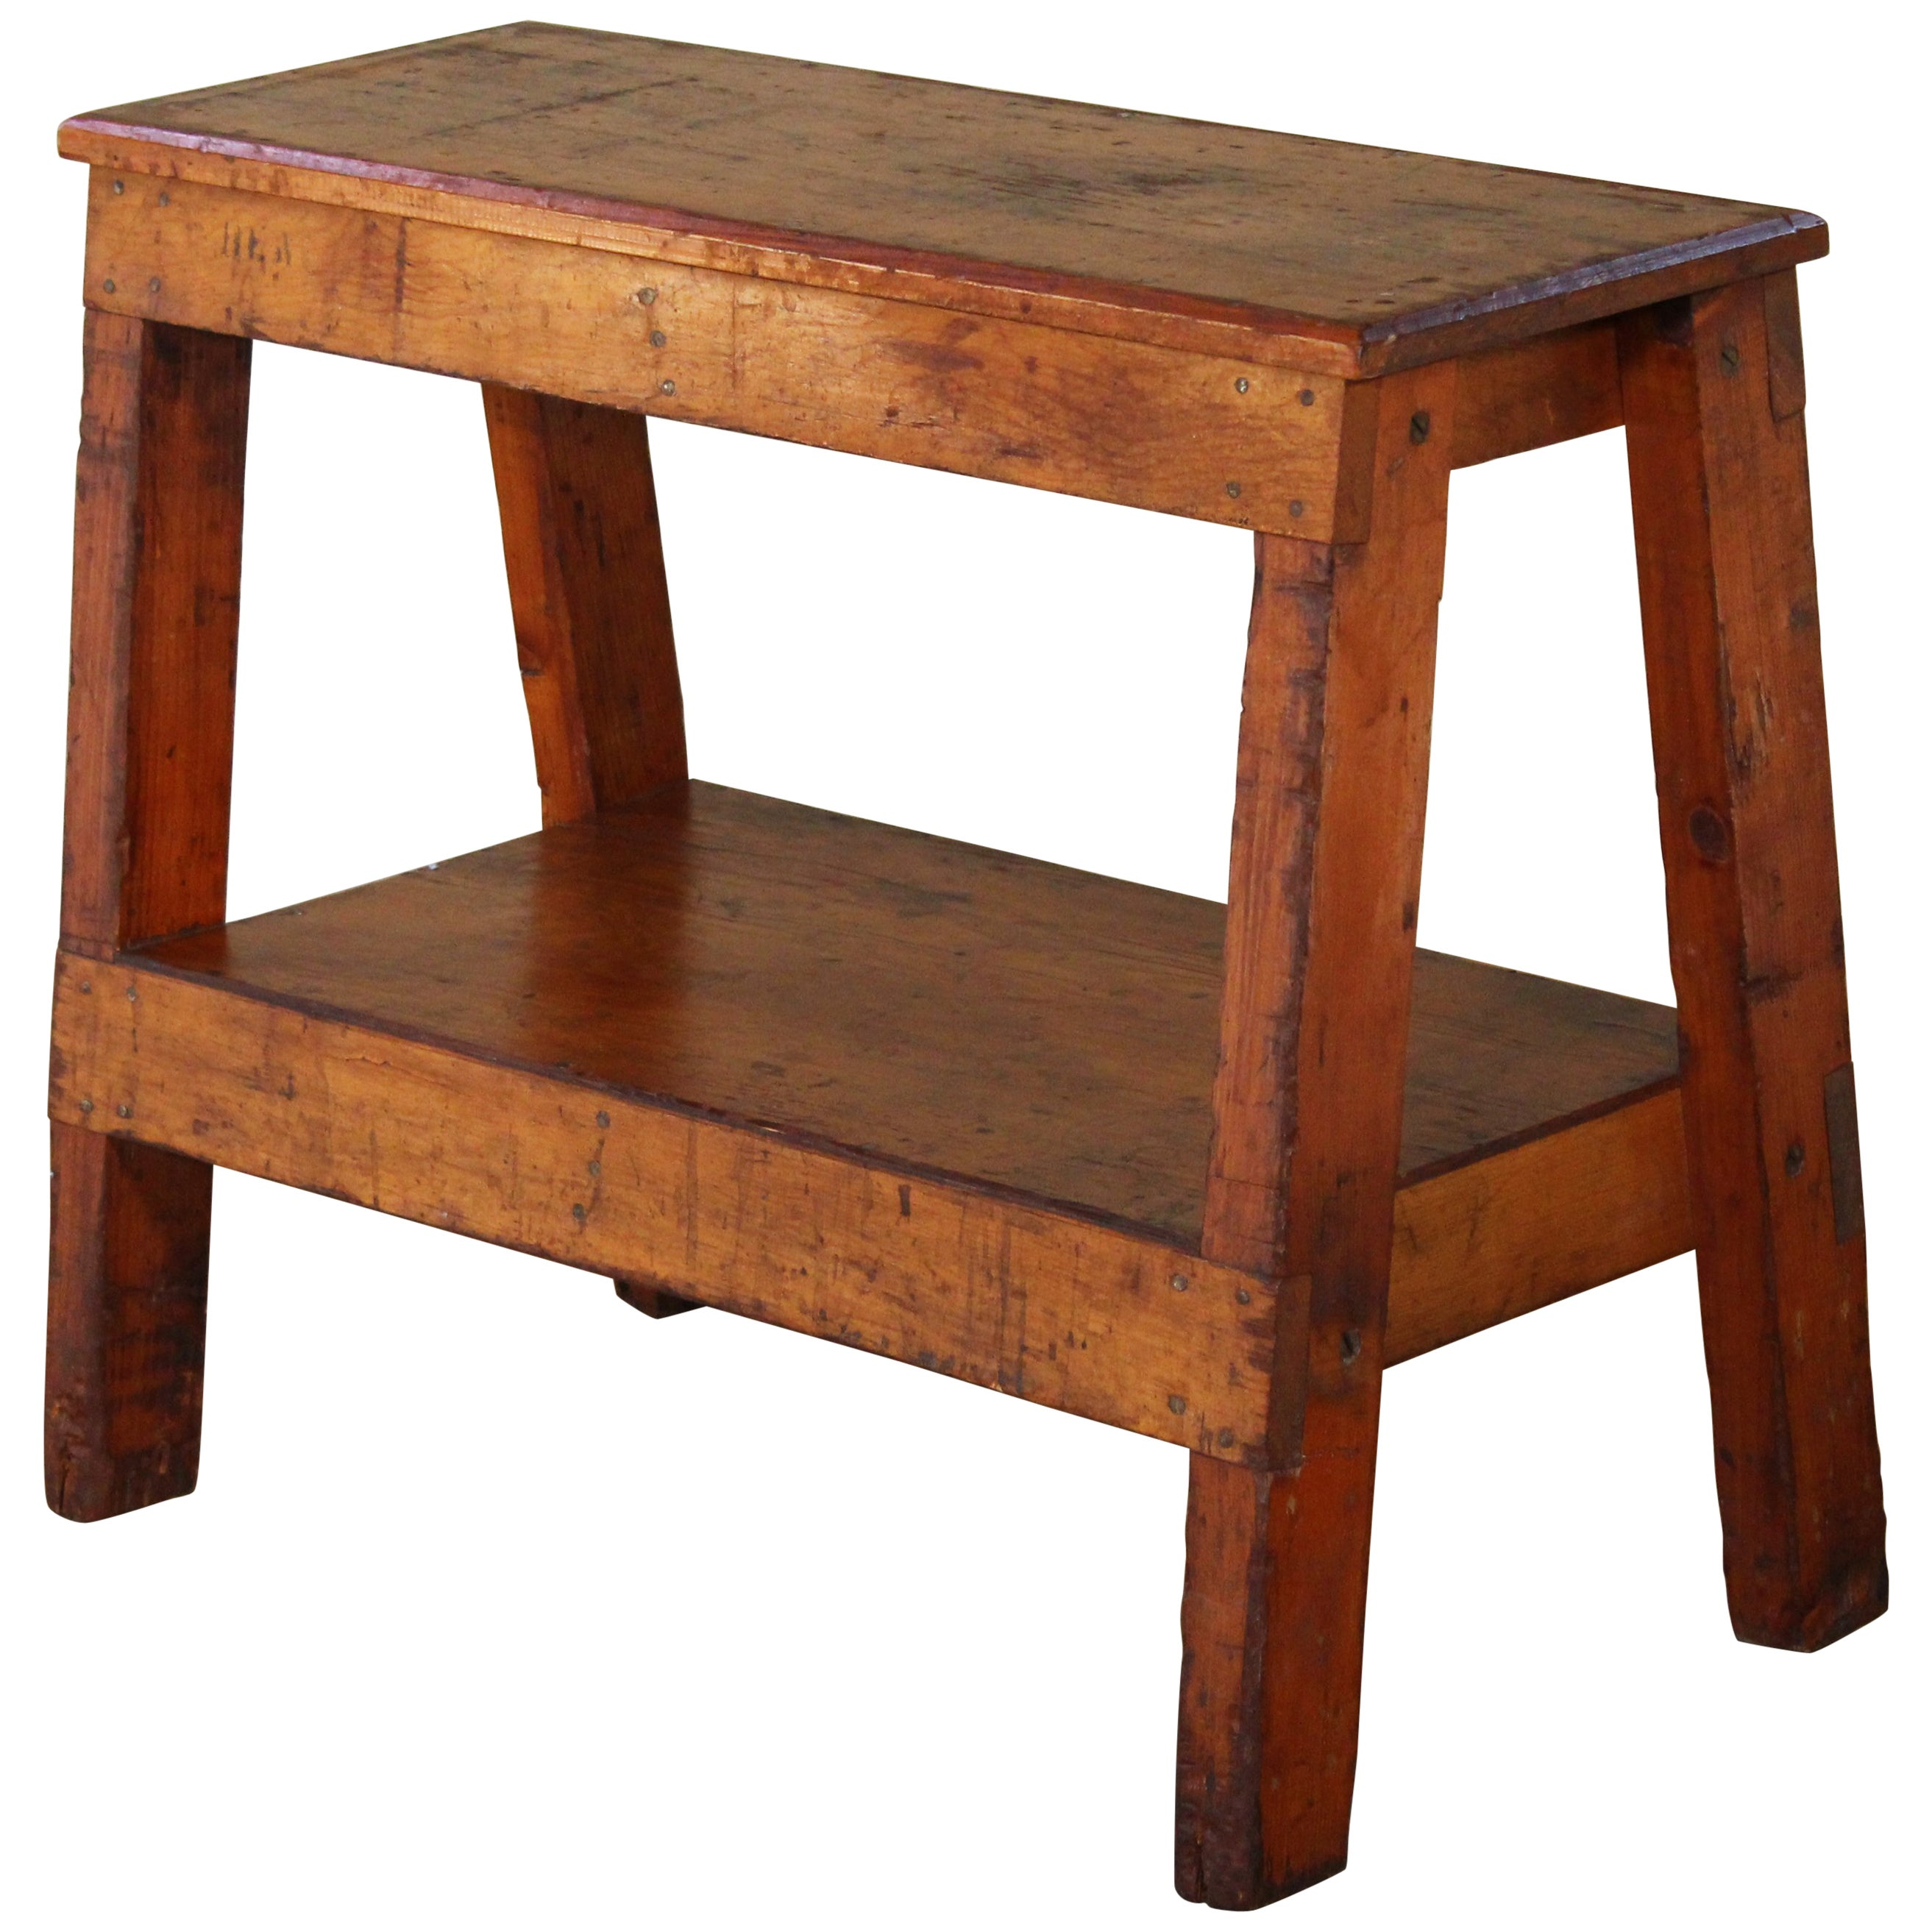 Wooden Bench Table Wooden Bench Side Or End Table Factory Shop Two Tier Industrial